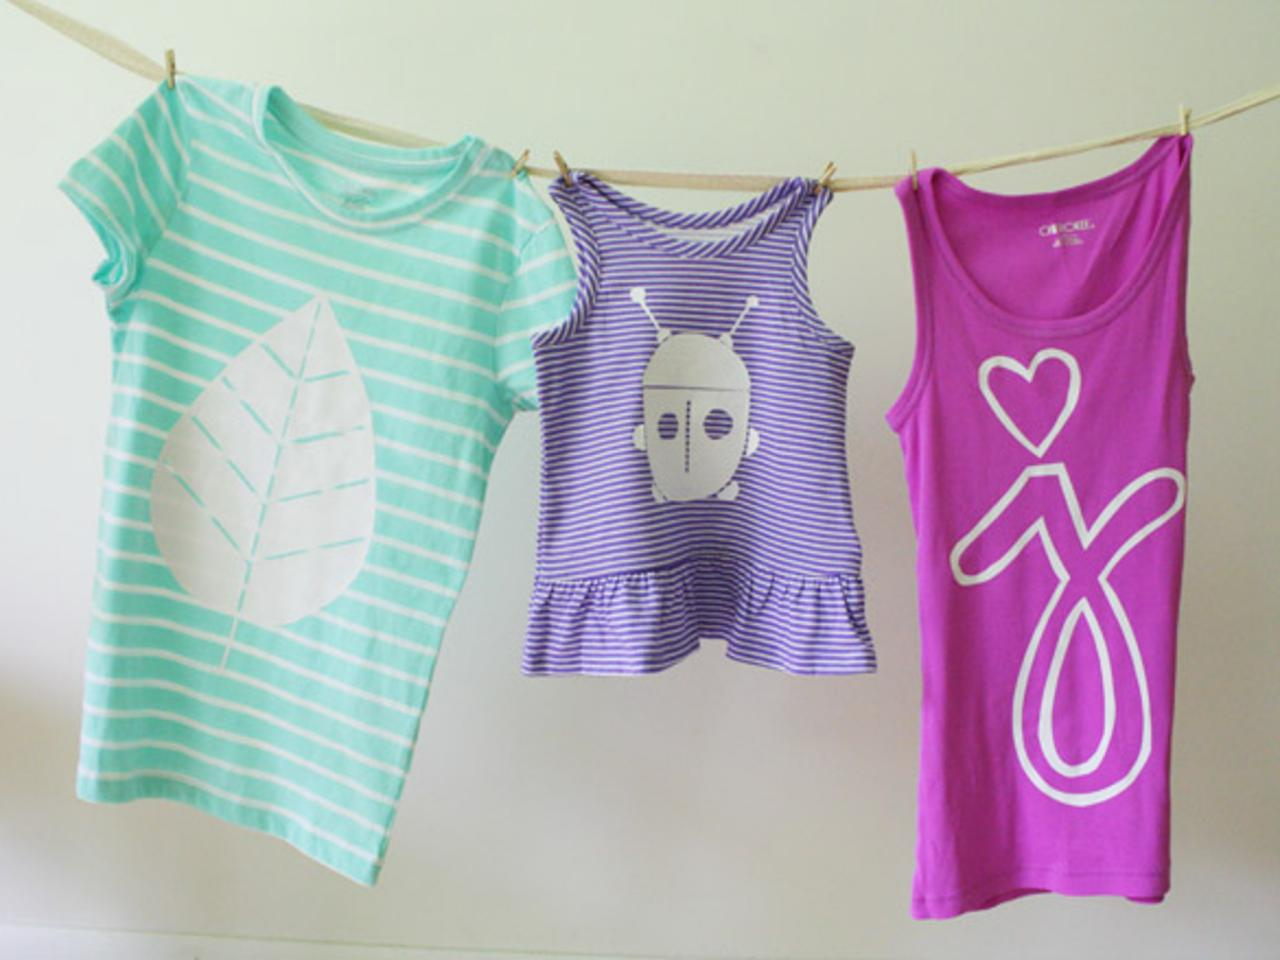 Learn How To Make Custom Shirts Using Diy Vinyl Cutouts